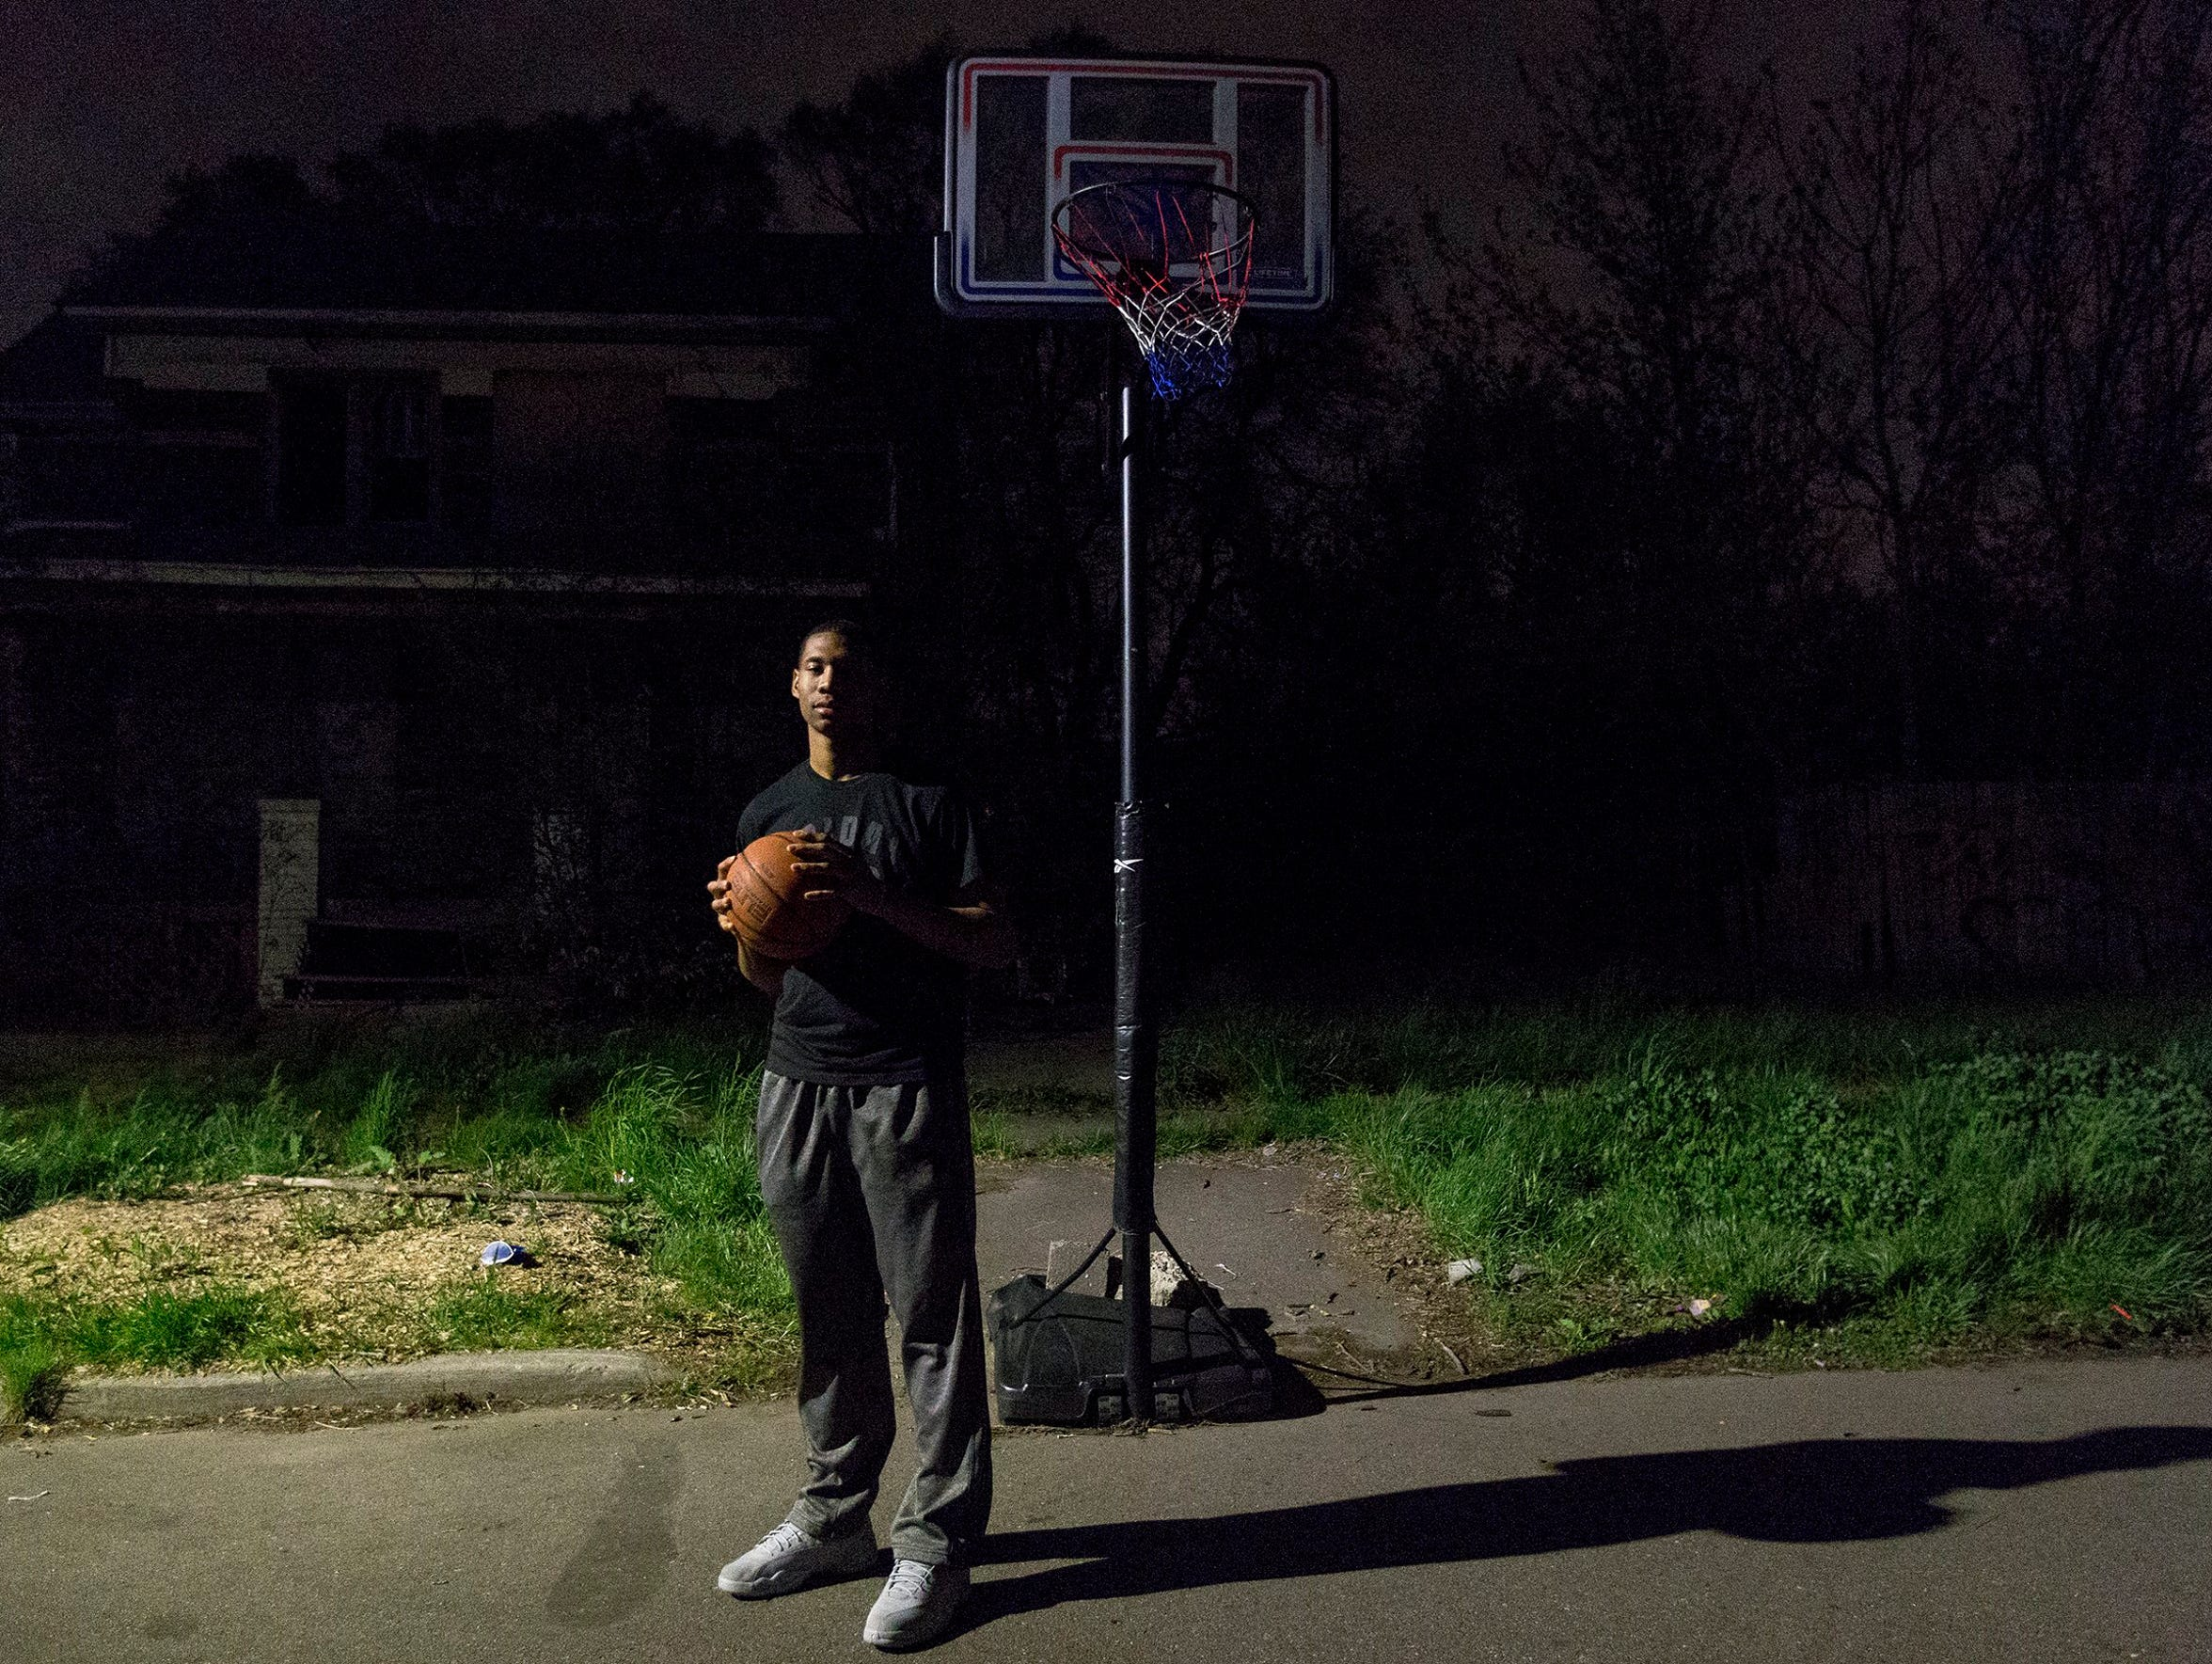 Michael Green stands under the same basketball hoop